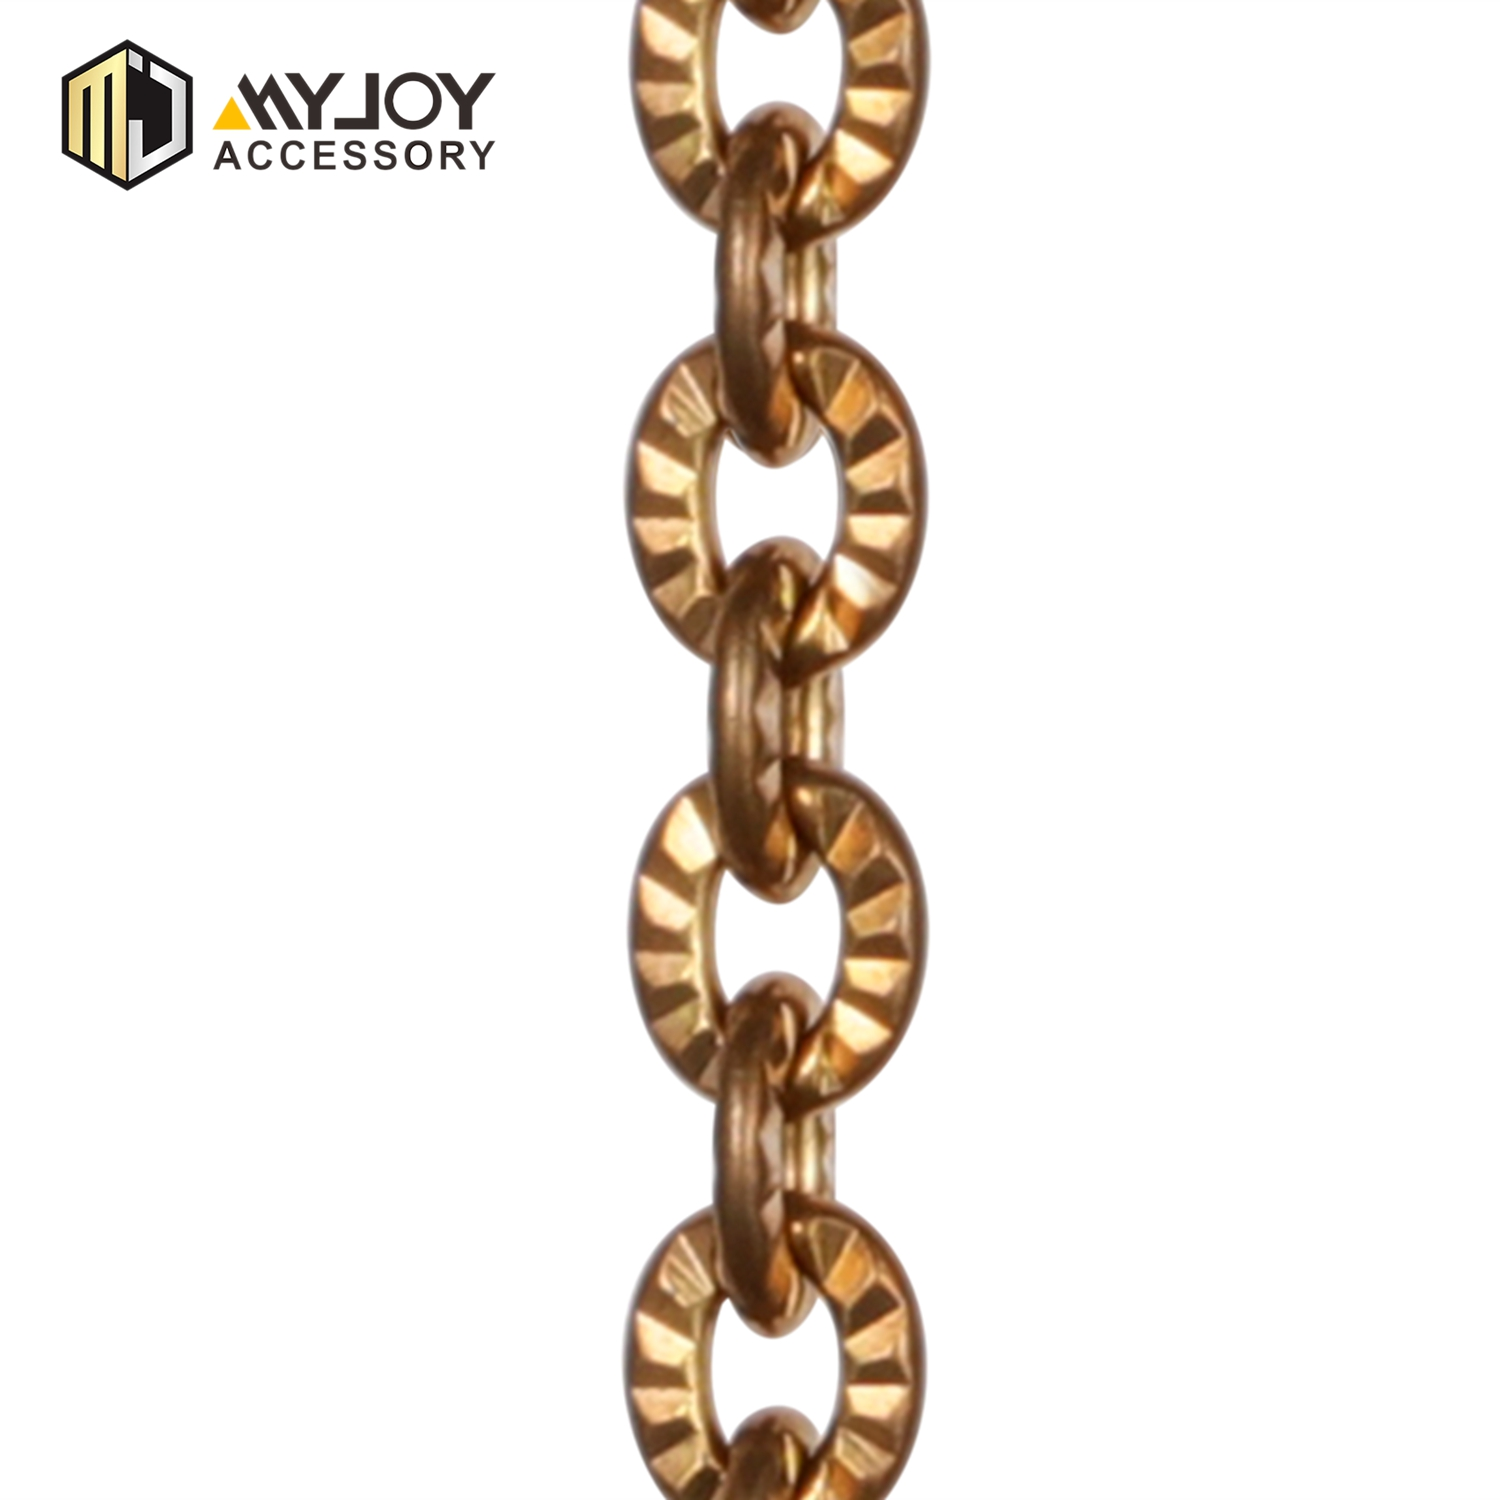 MYJOY Wholesale strap chain factory for bags-1